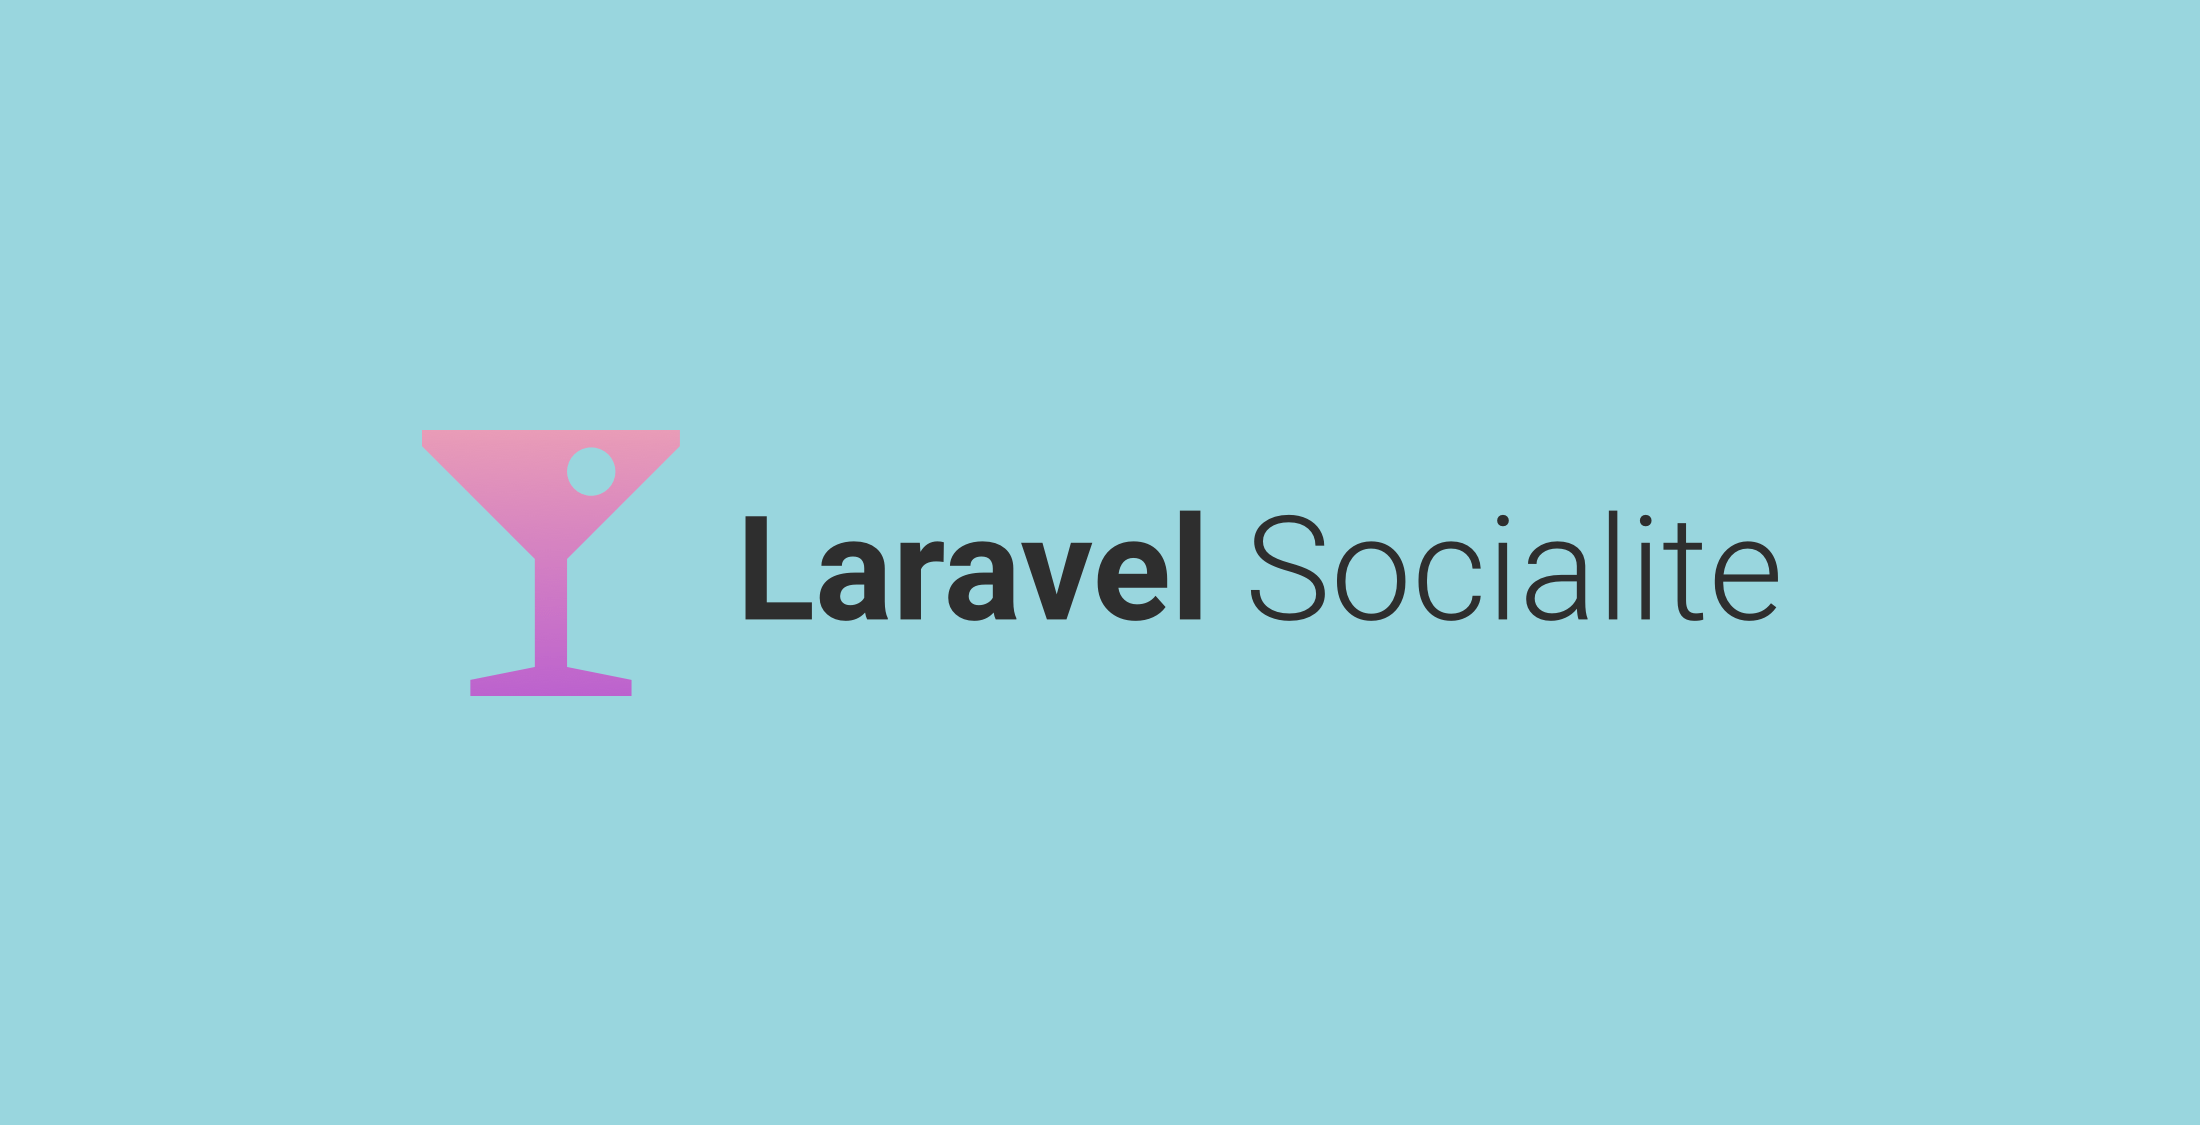 [Laravel Socialite](https://laravel.com/docs/5.6/socialite) handles login with OAuth and is officially maintained by the Laravel team.